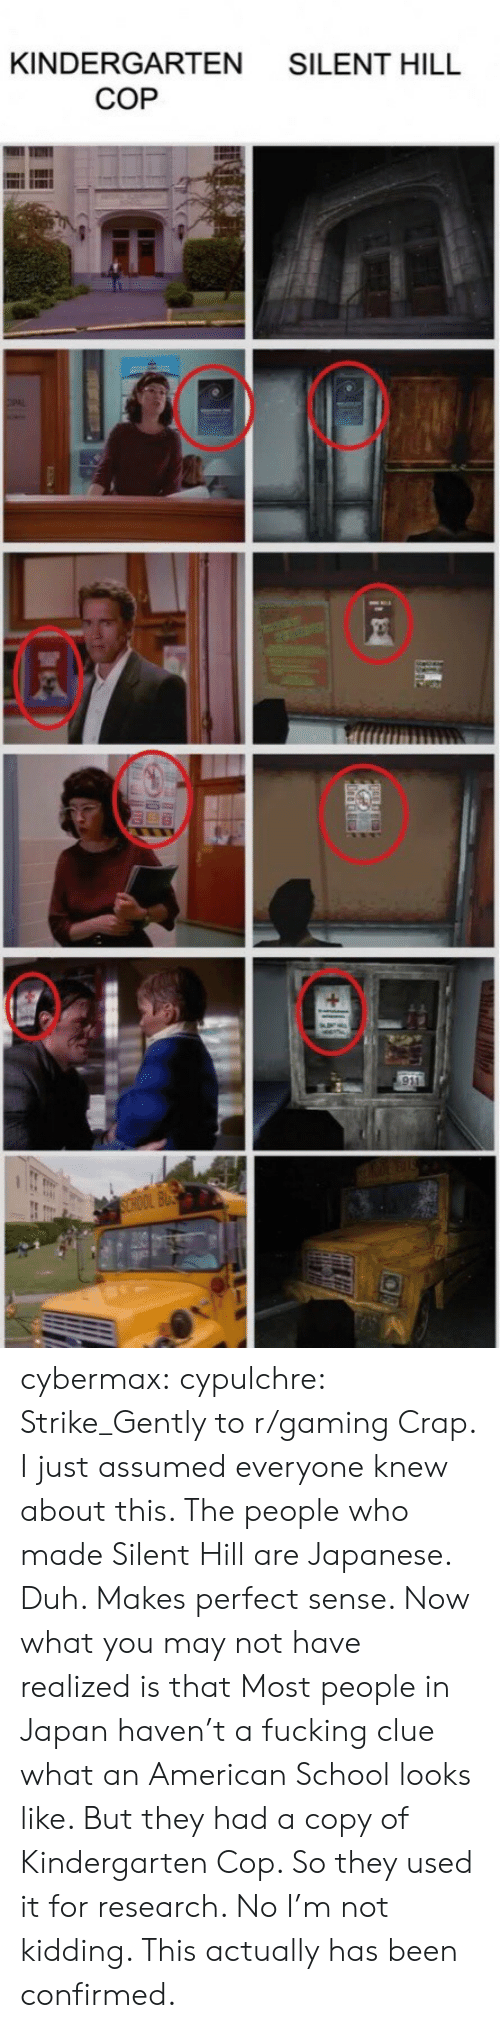 makes-perfect-sense: KINDERGARTEN SILENT HILL  COP cybermax:  cypulchre:   Strike_Gently to r/gaming   Crap. I just assumed everyone knew about this. The people who made Silent Hill are Japanese. Duh. Makes perfect sense. Now what you may not have realized is that Most people in Japan haven't a fucking clue what an American School looks like. But they had a copy of Kindergarten Cop. So they used it for research. No I'm not kidding. This actually has been confirmed.